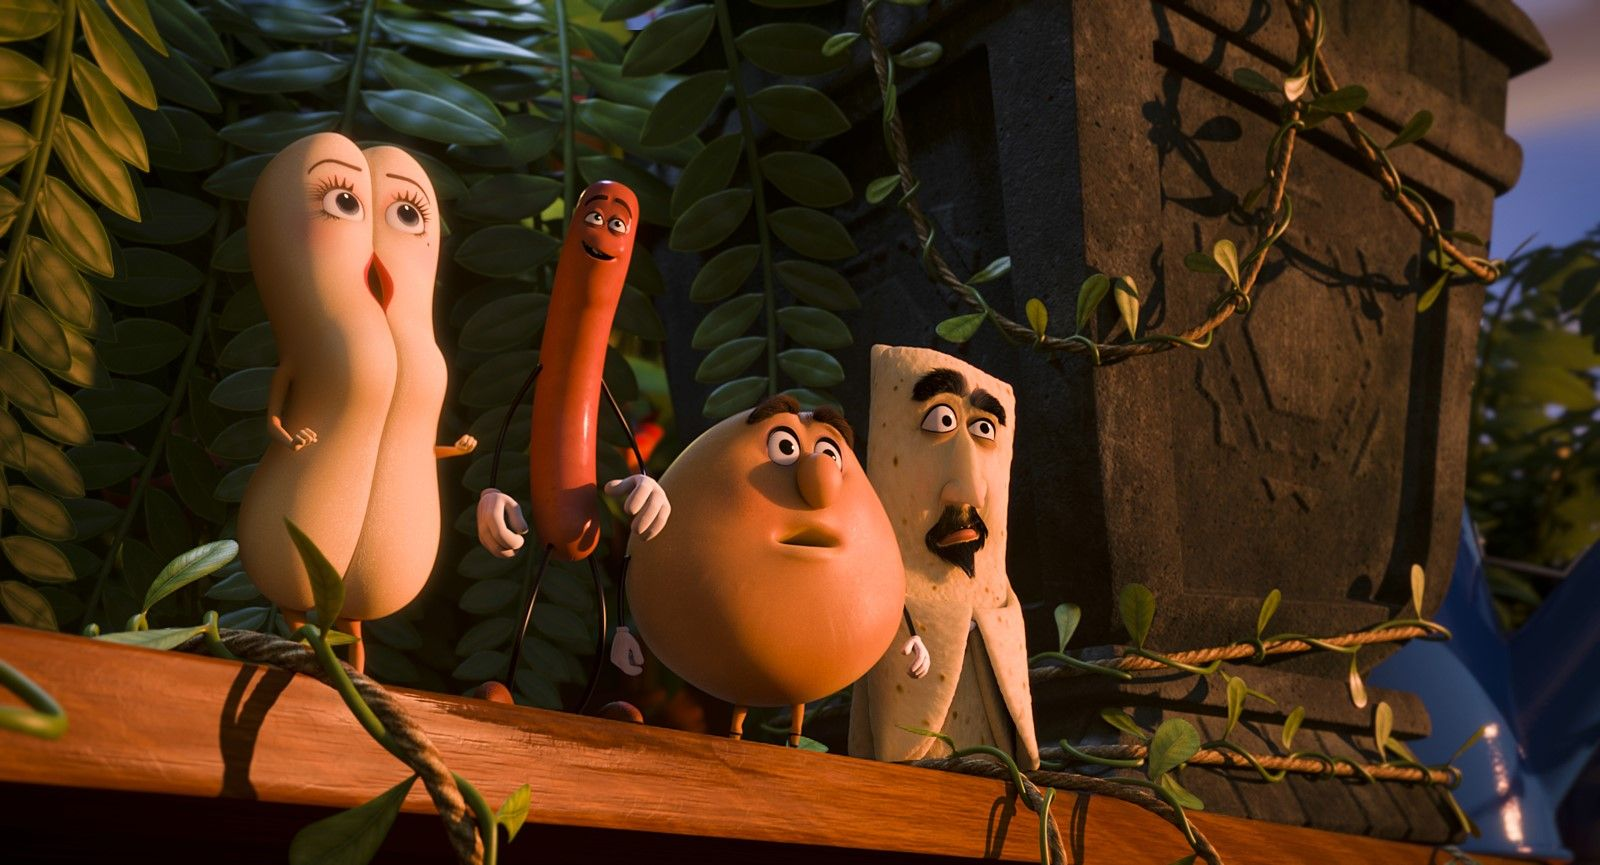 (l to r) Brenda the hot dog bun (voiced by Kristen Wiig), Frank the sausage (voiced by Seth Rogen), Sammy Bagel Jr (voiced by Edward Norton) and Kareem Abdul Lavash (voiced by David Krumholtz) in Sausage Party (2016)